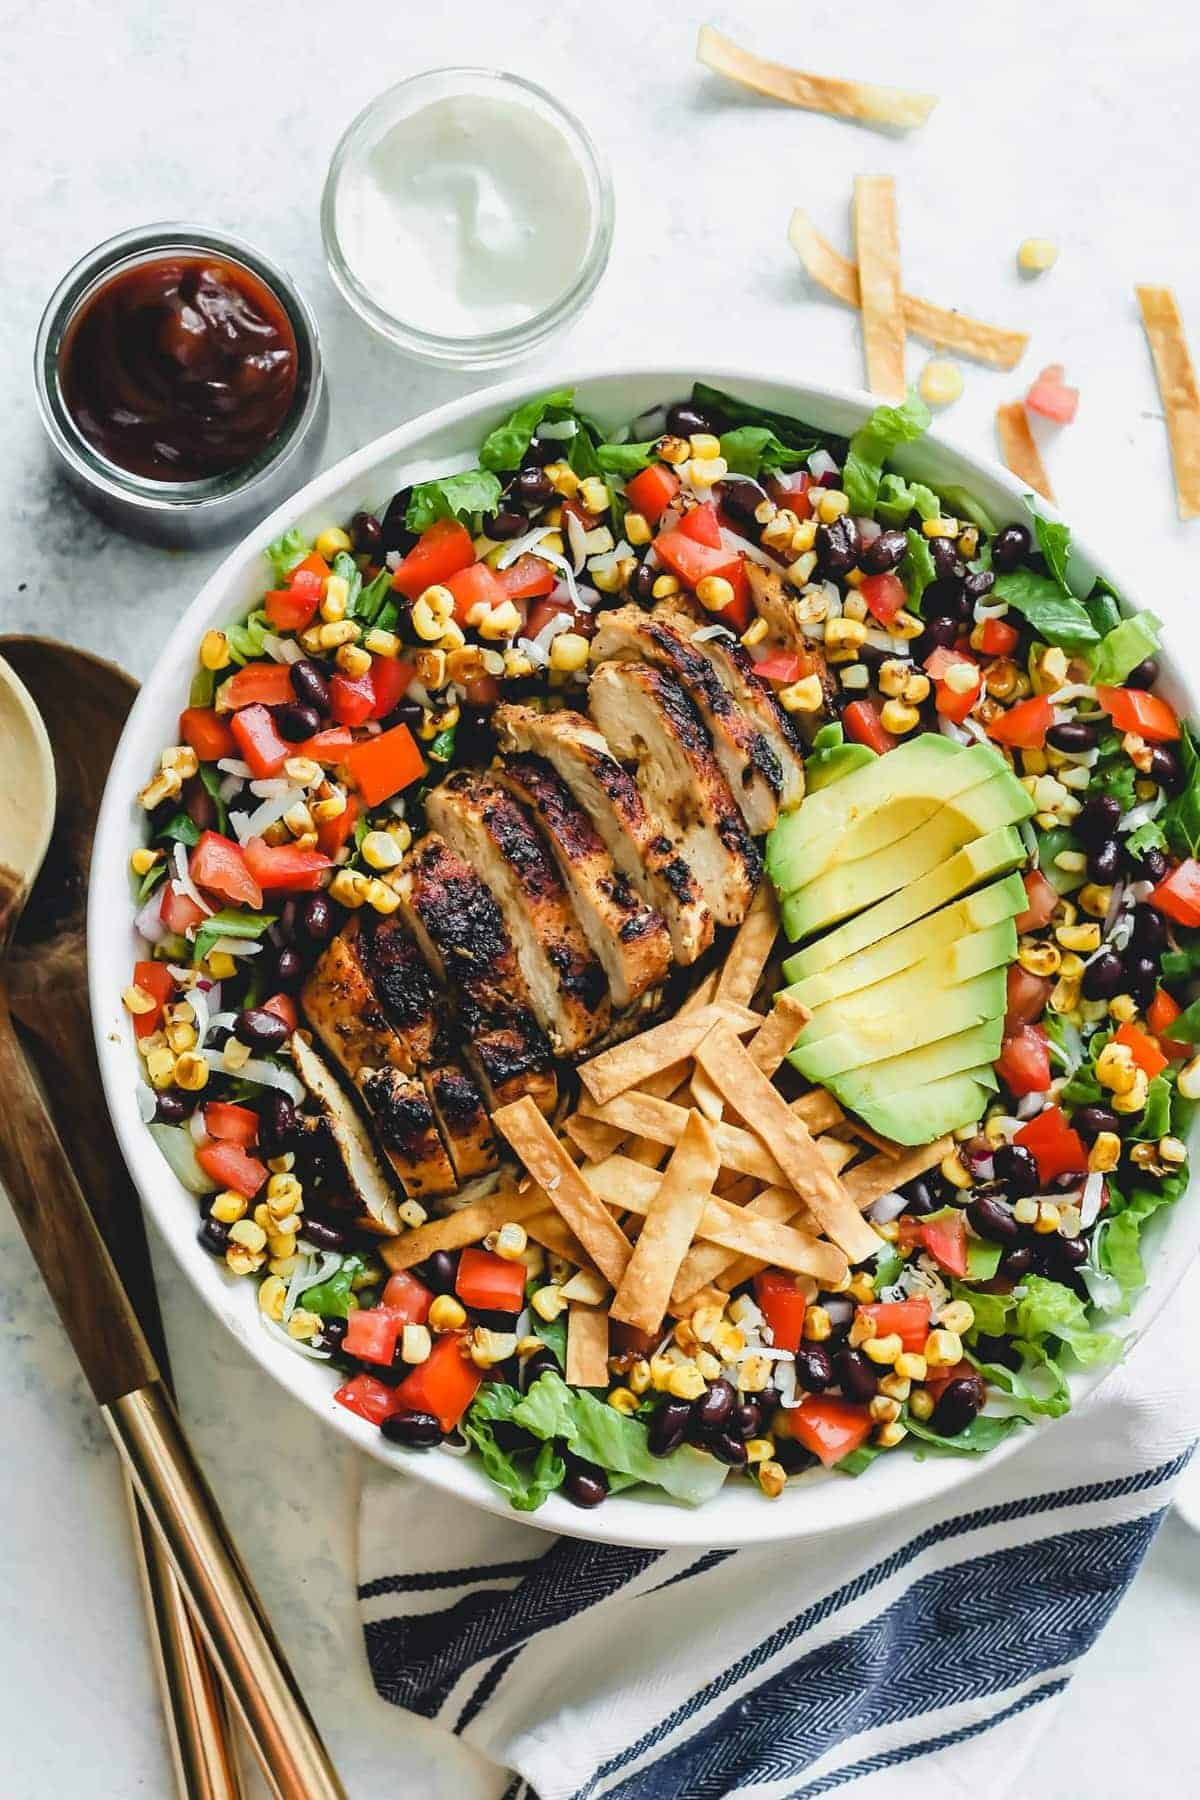 BBQ Chicken Salad served in a large bowl with sauces on the side